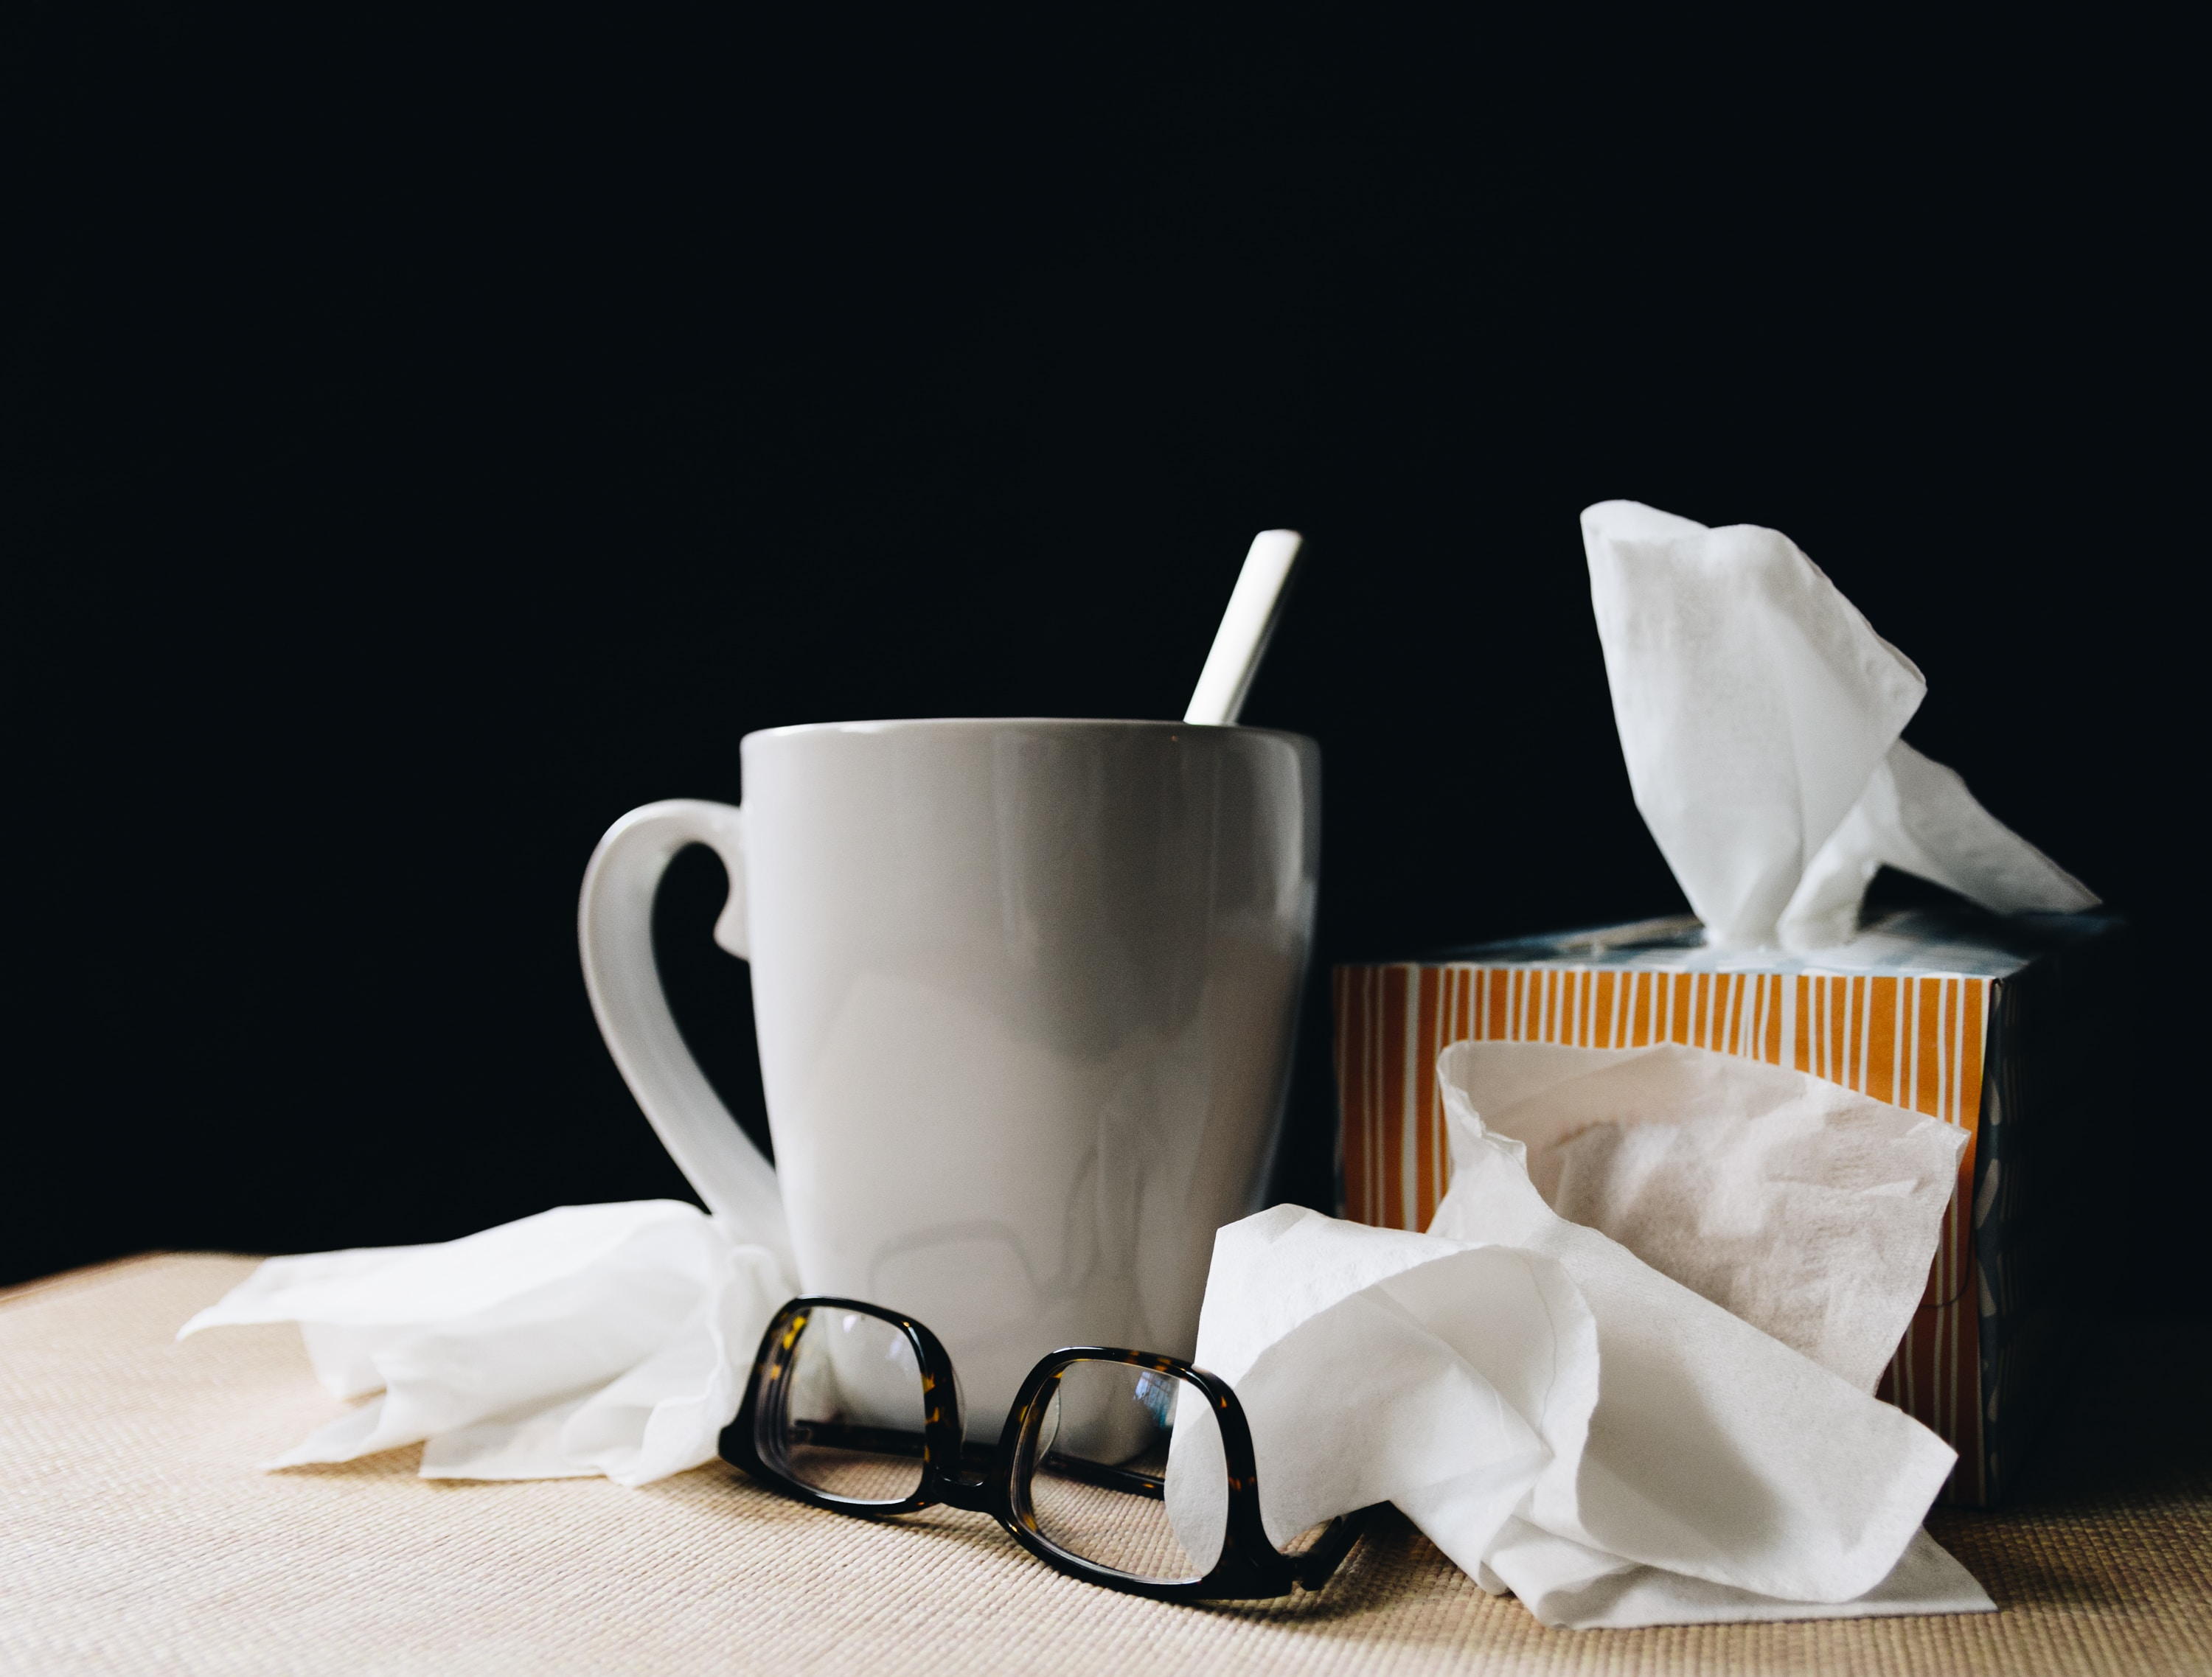 The key to curing the common cold could lurk within our own cells